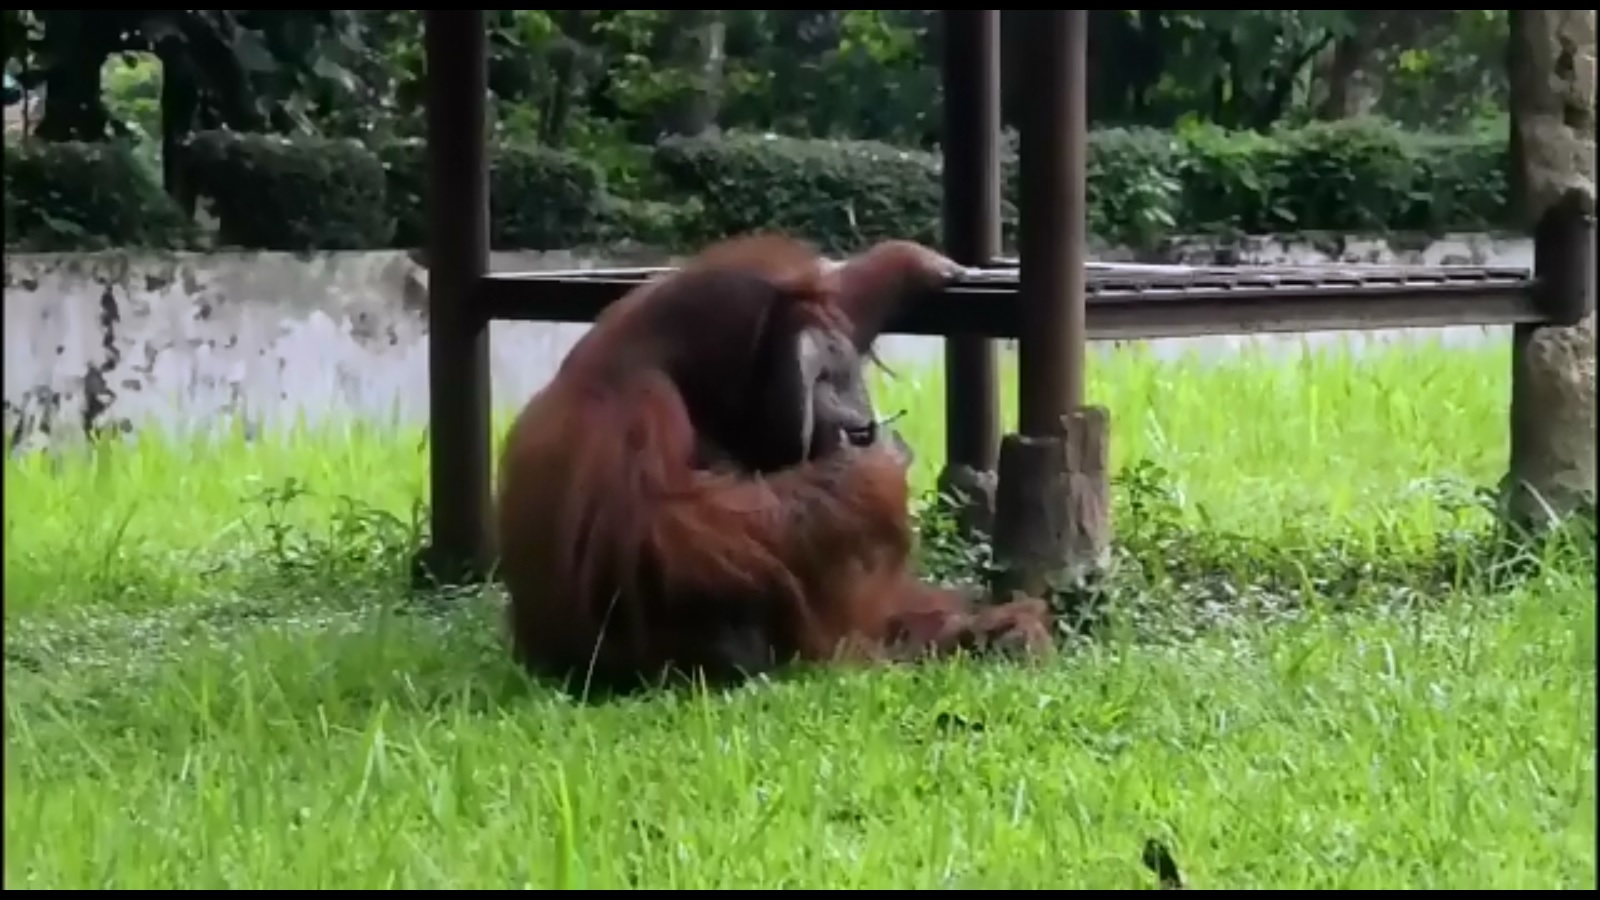 Controversy grows over Orangutan smoking cigarette at Indonesian Zoo